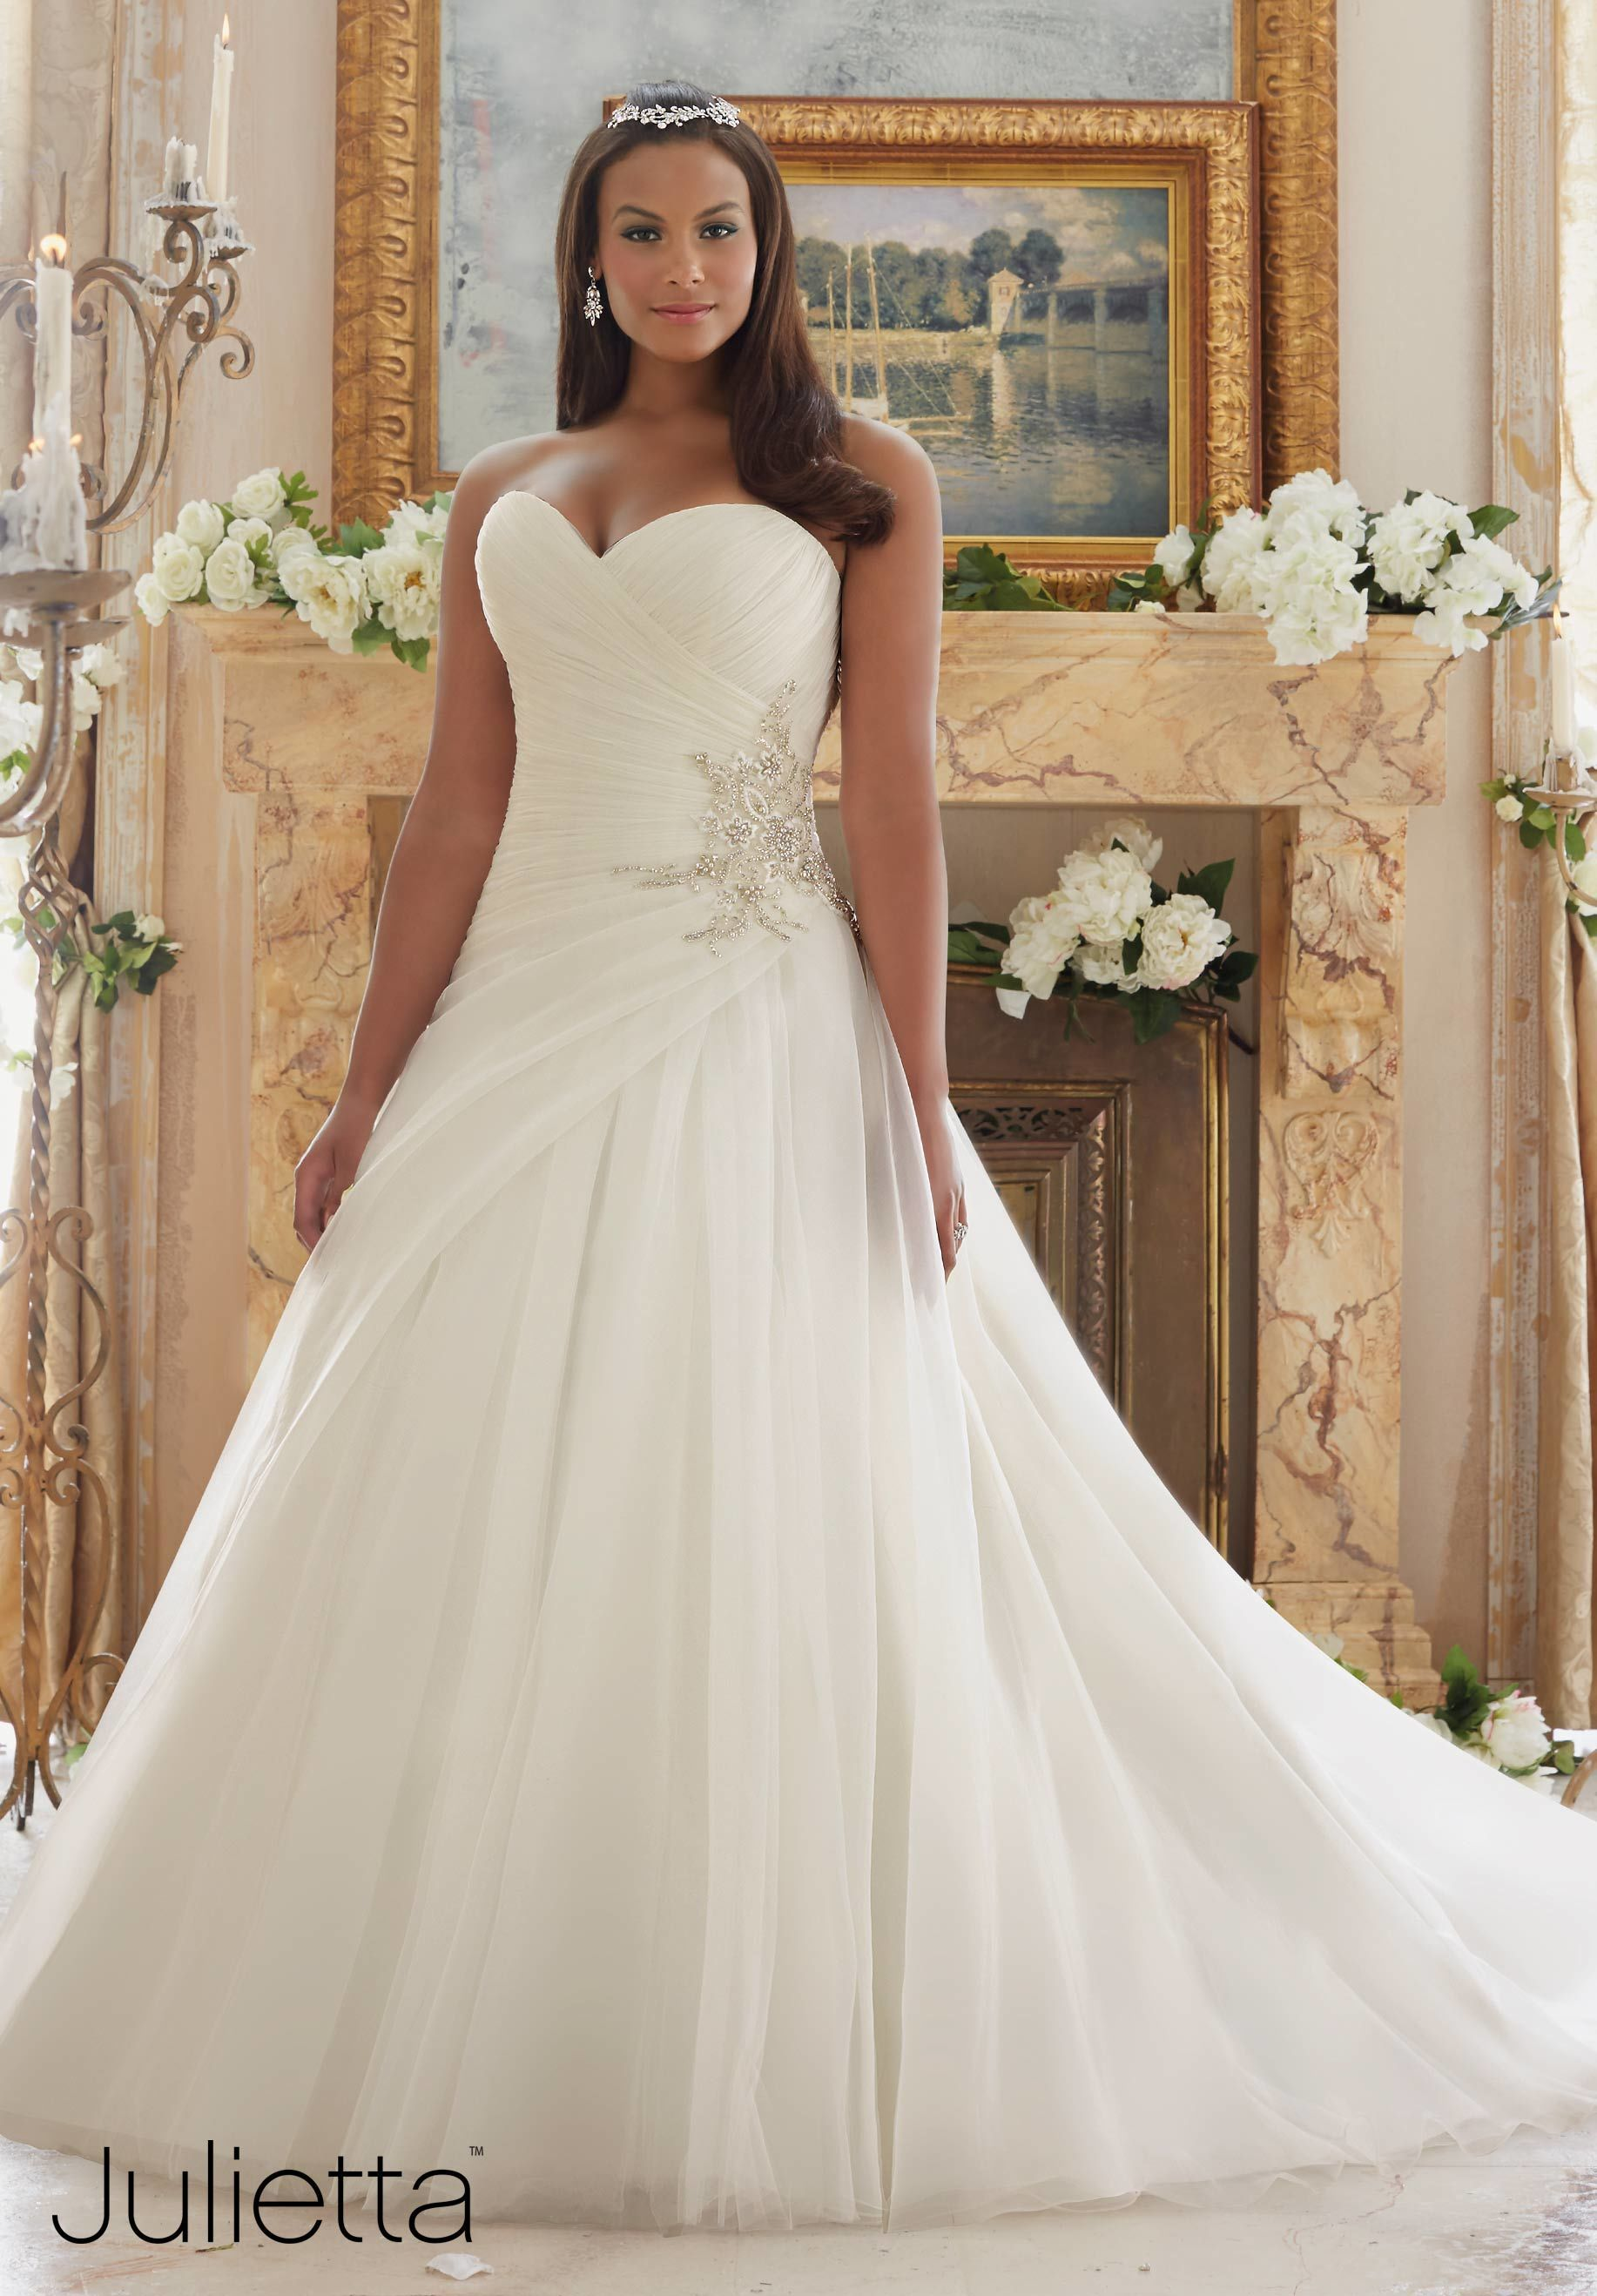 Wedding dresses for curvy women for Wedding dresses for larger figures